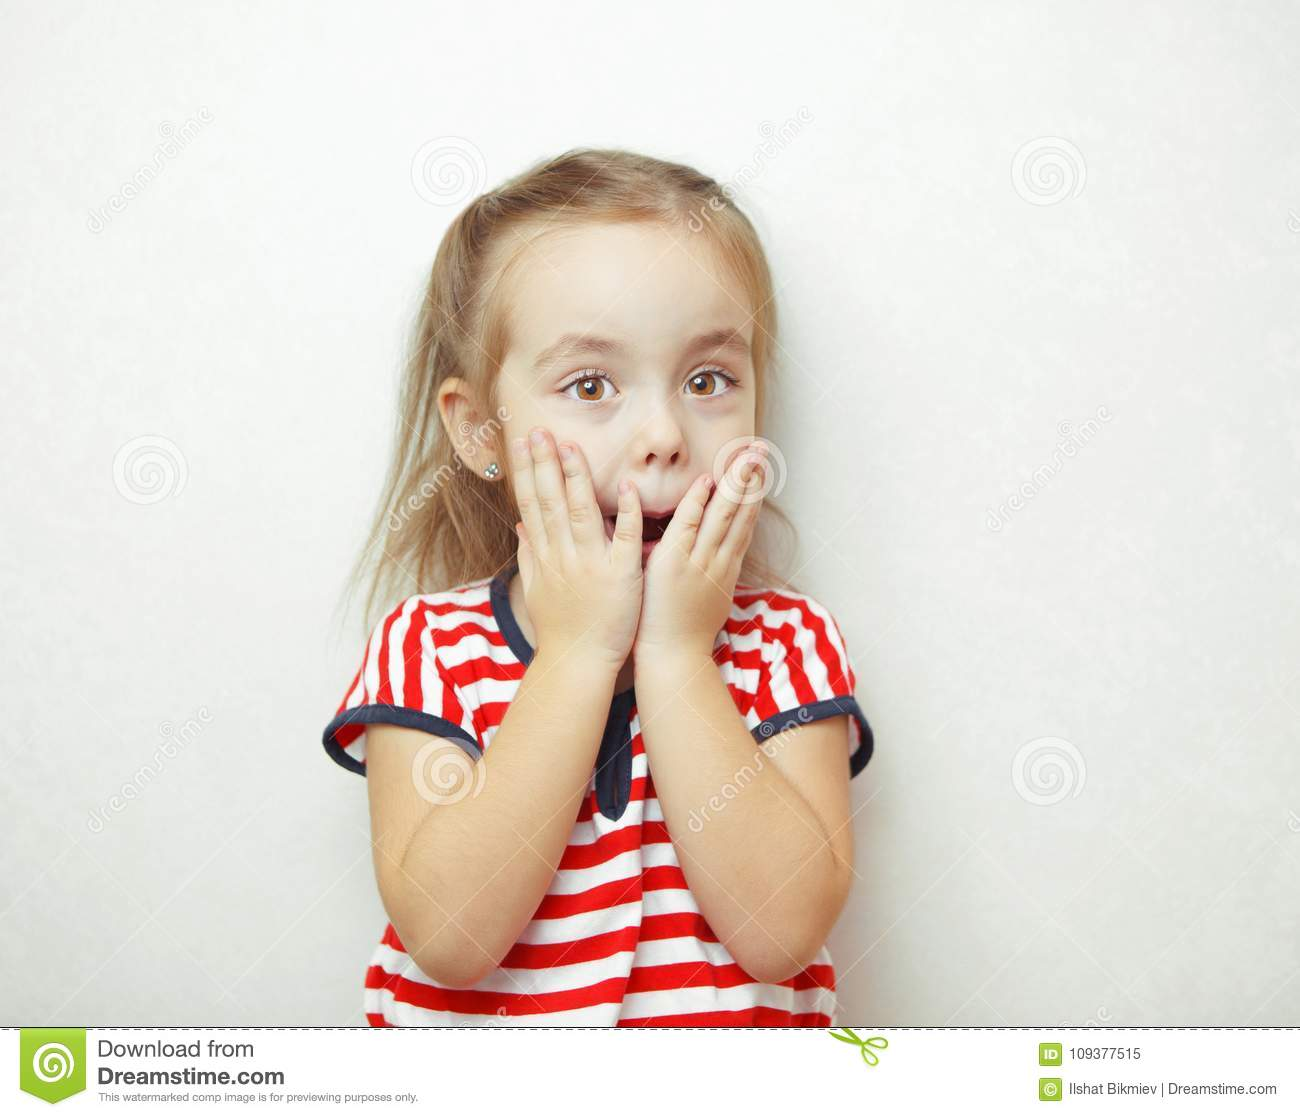 Child with hazel eyes expressing her surprise emotion